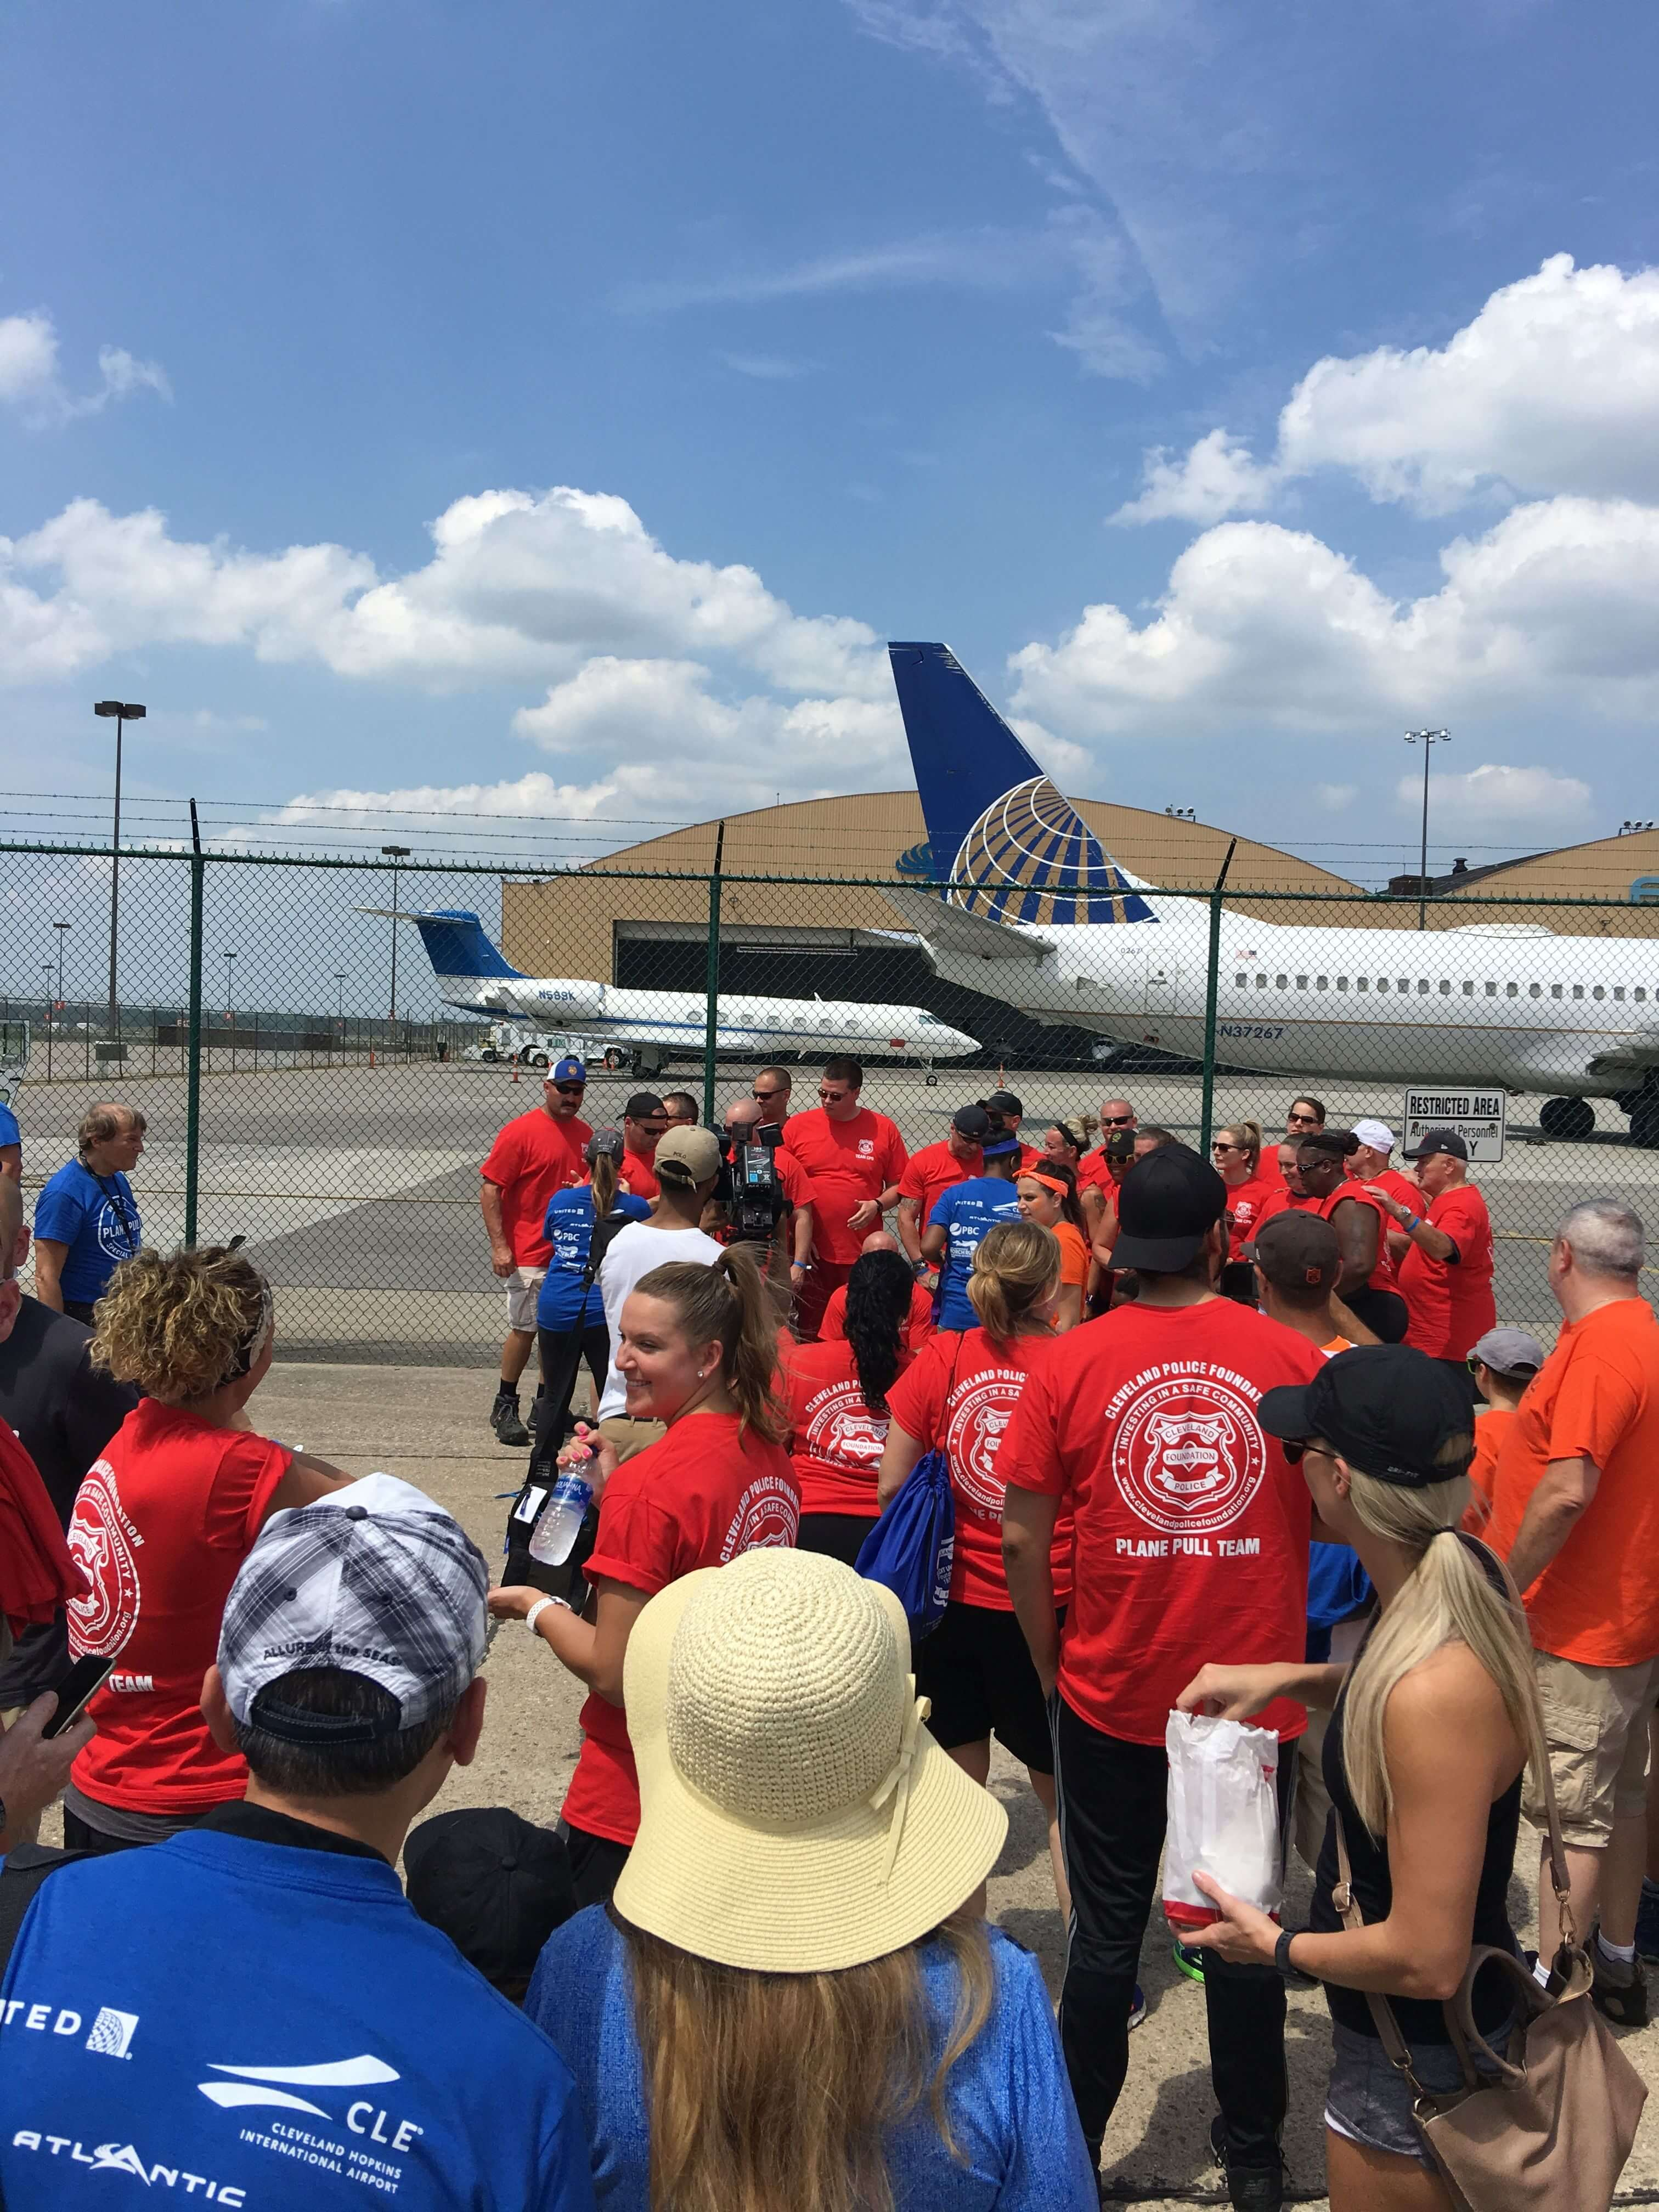 United Airlines Special Olympics Plane Pull